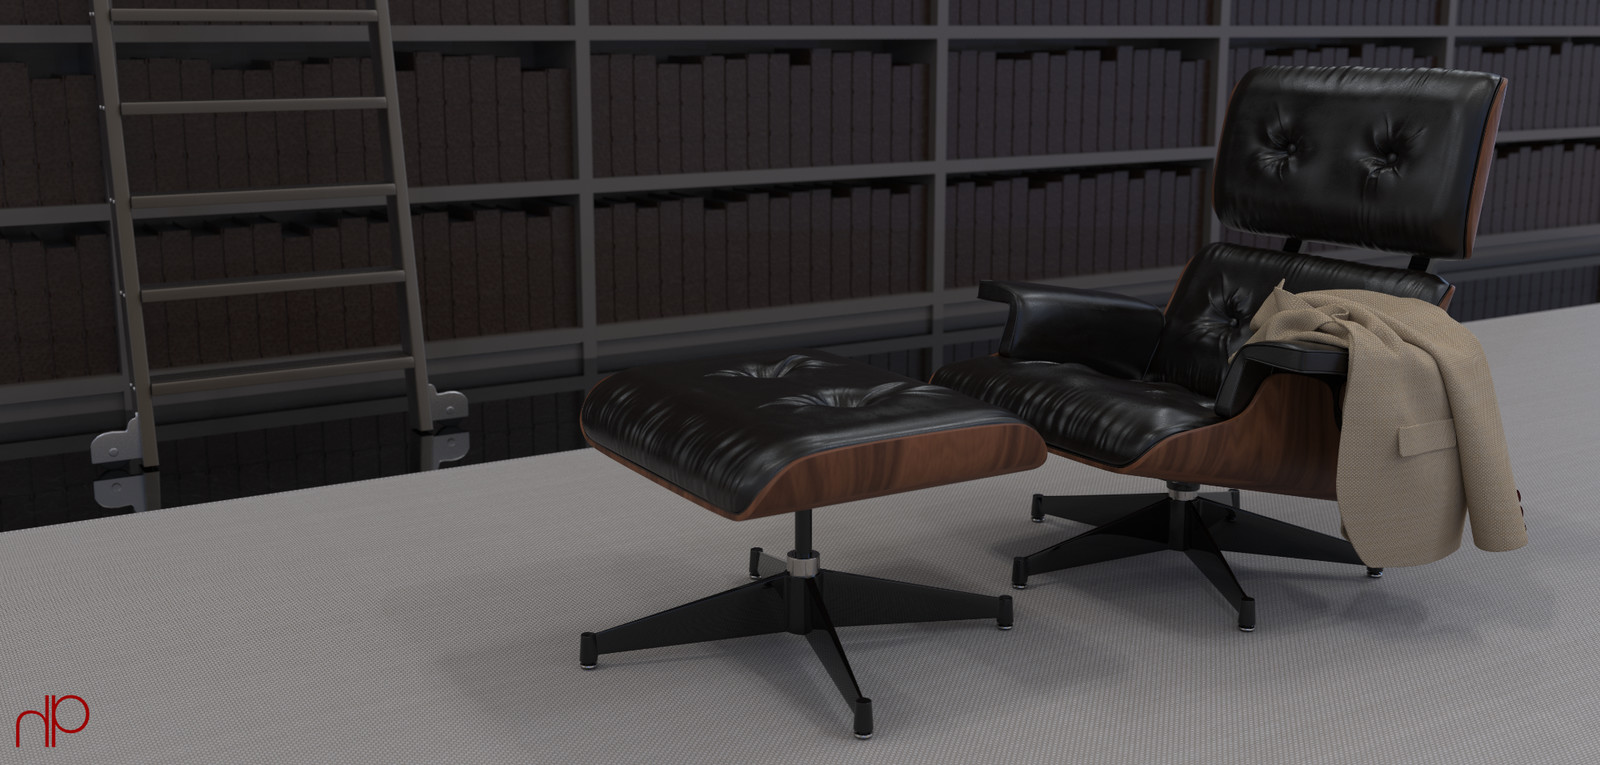 3D Modelling: Regard For Eames